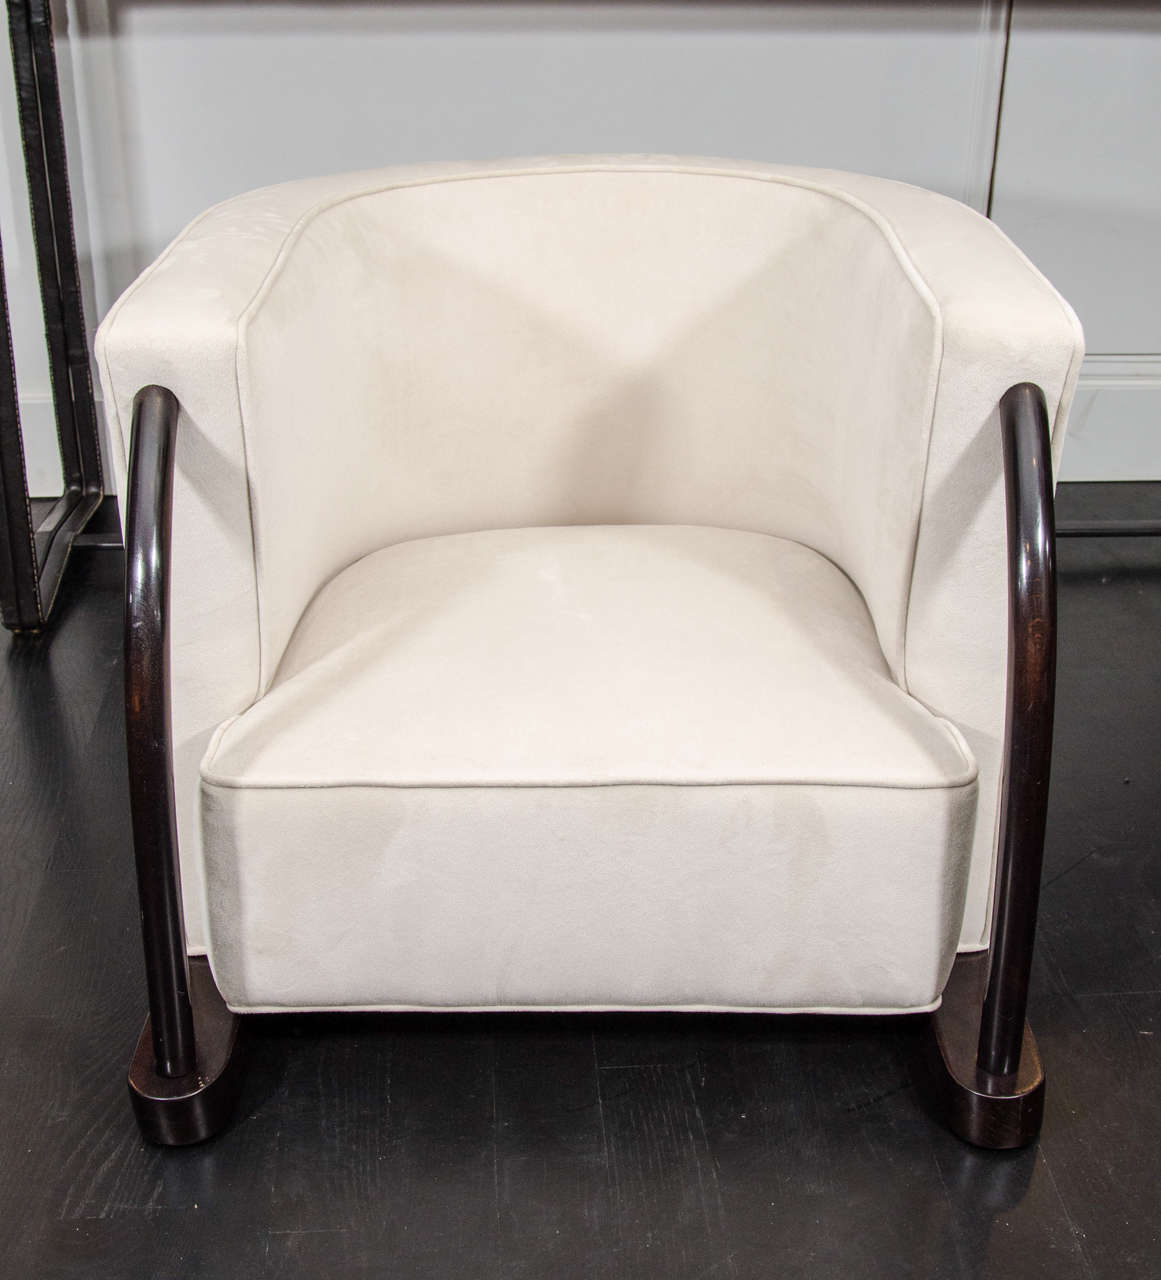 Pair of upholstered chairs in the style of Dominique. Beautifully proportioned and upholstered in cream velvet. Open to custom upholstery on request, COM.